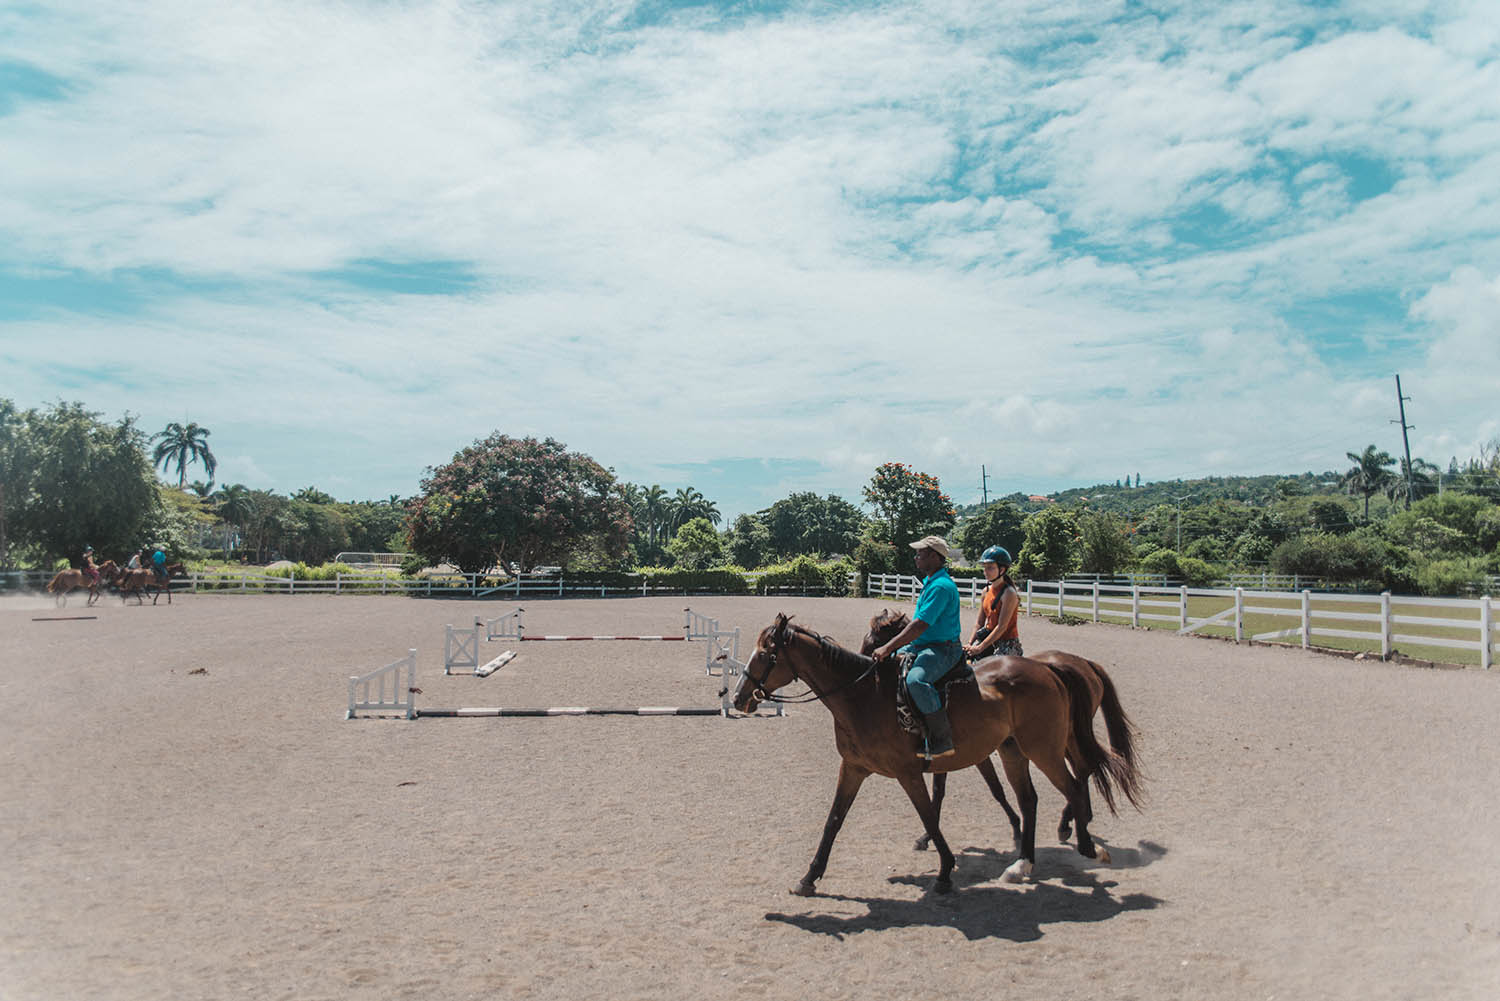 Horse-back riding on Half Moon Equestrian arena